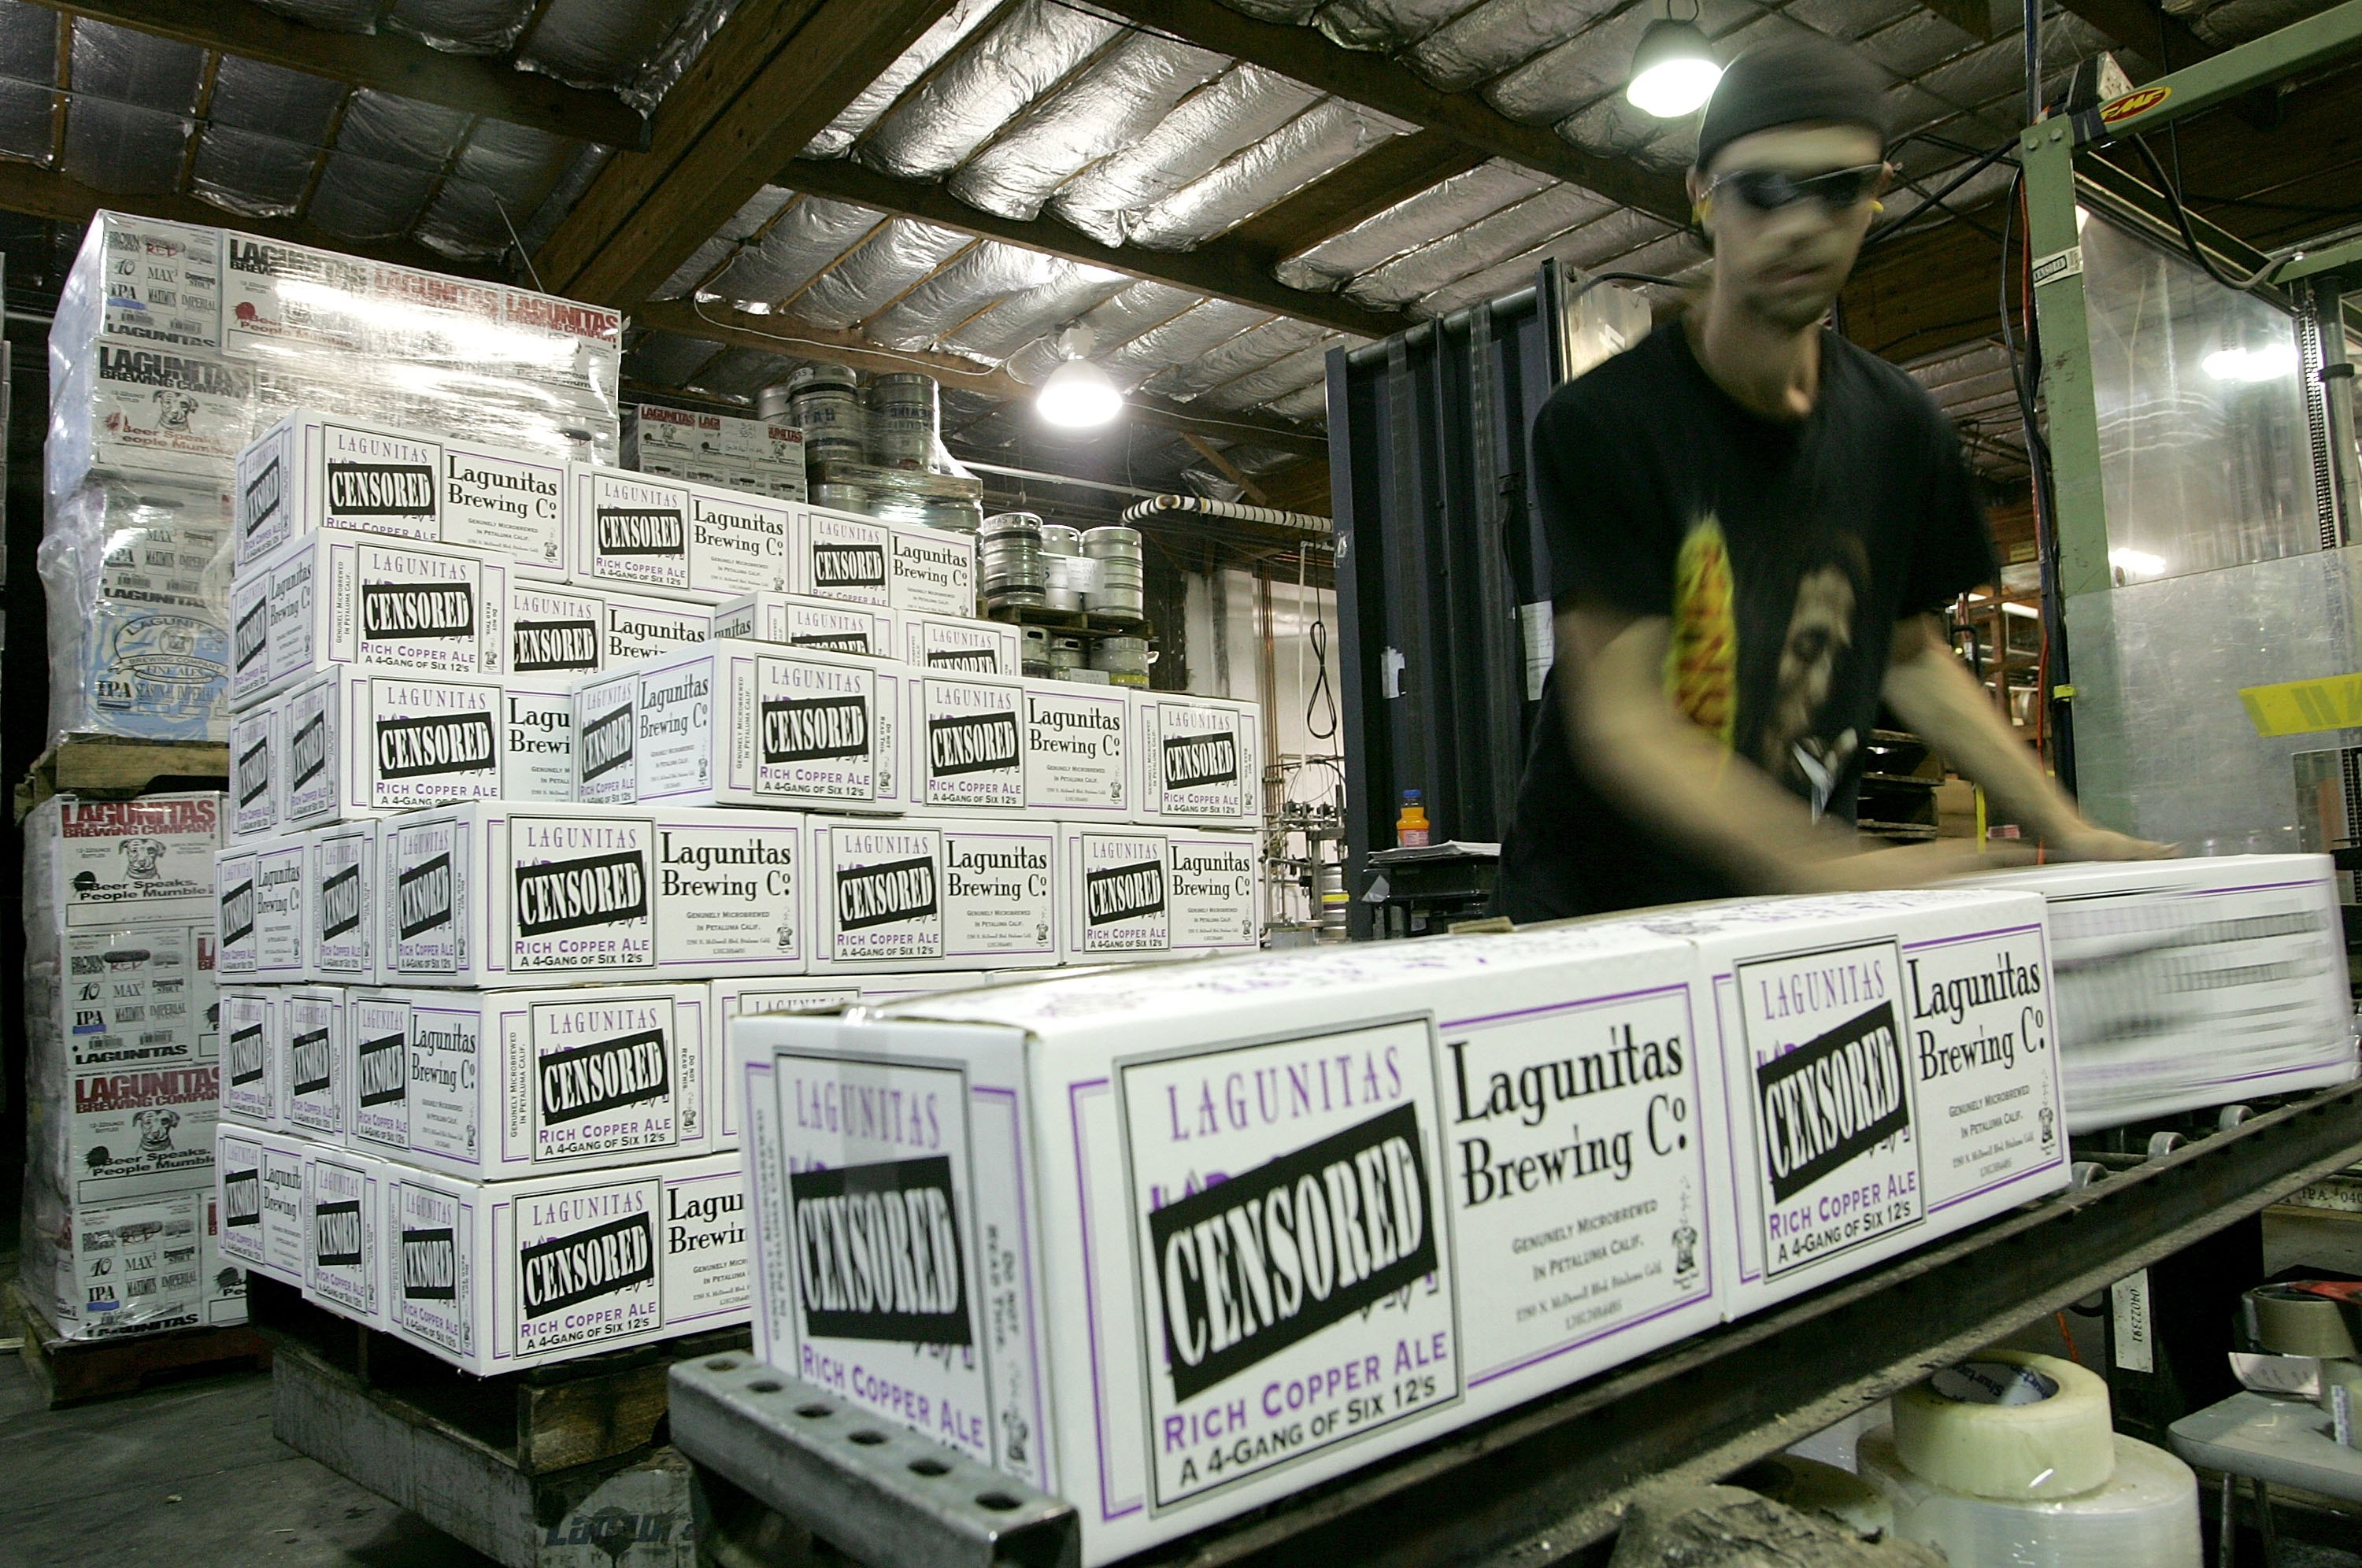 Lagunitas Brewing Company worker Paul Wickham stacks cases of beer at the brewery on March 28, 2006 in Petaluma, Calif.